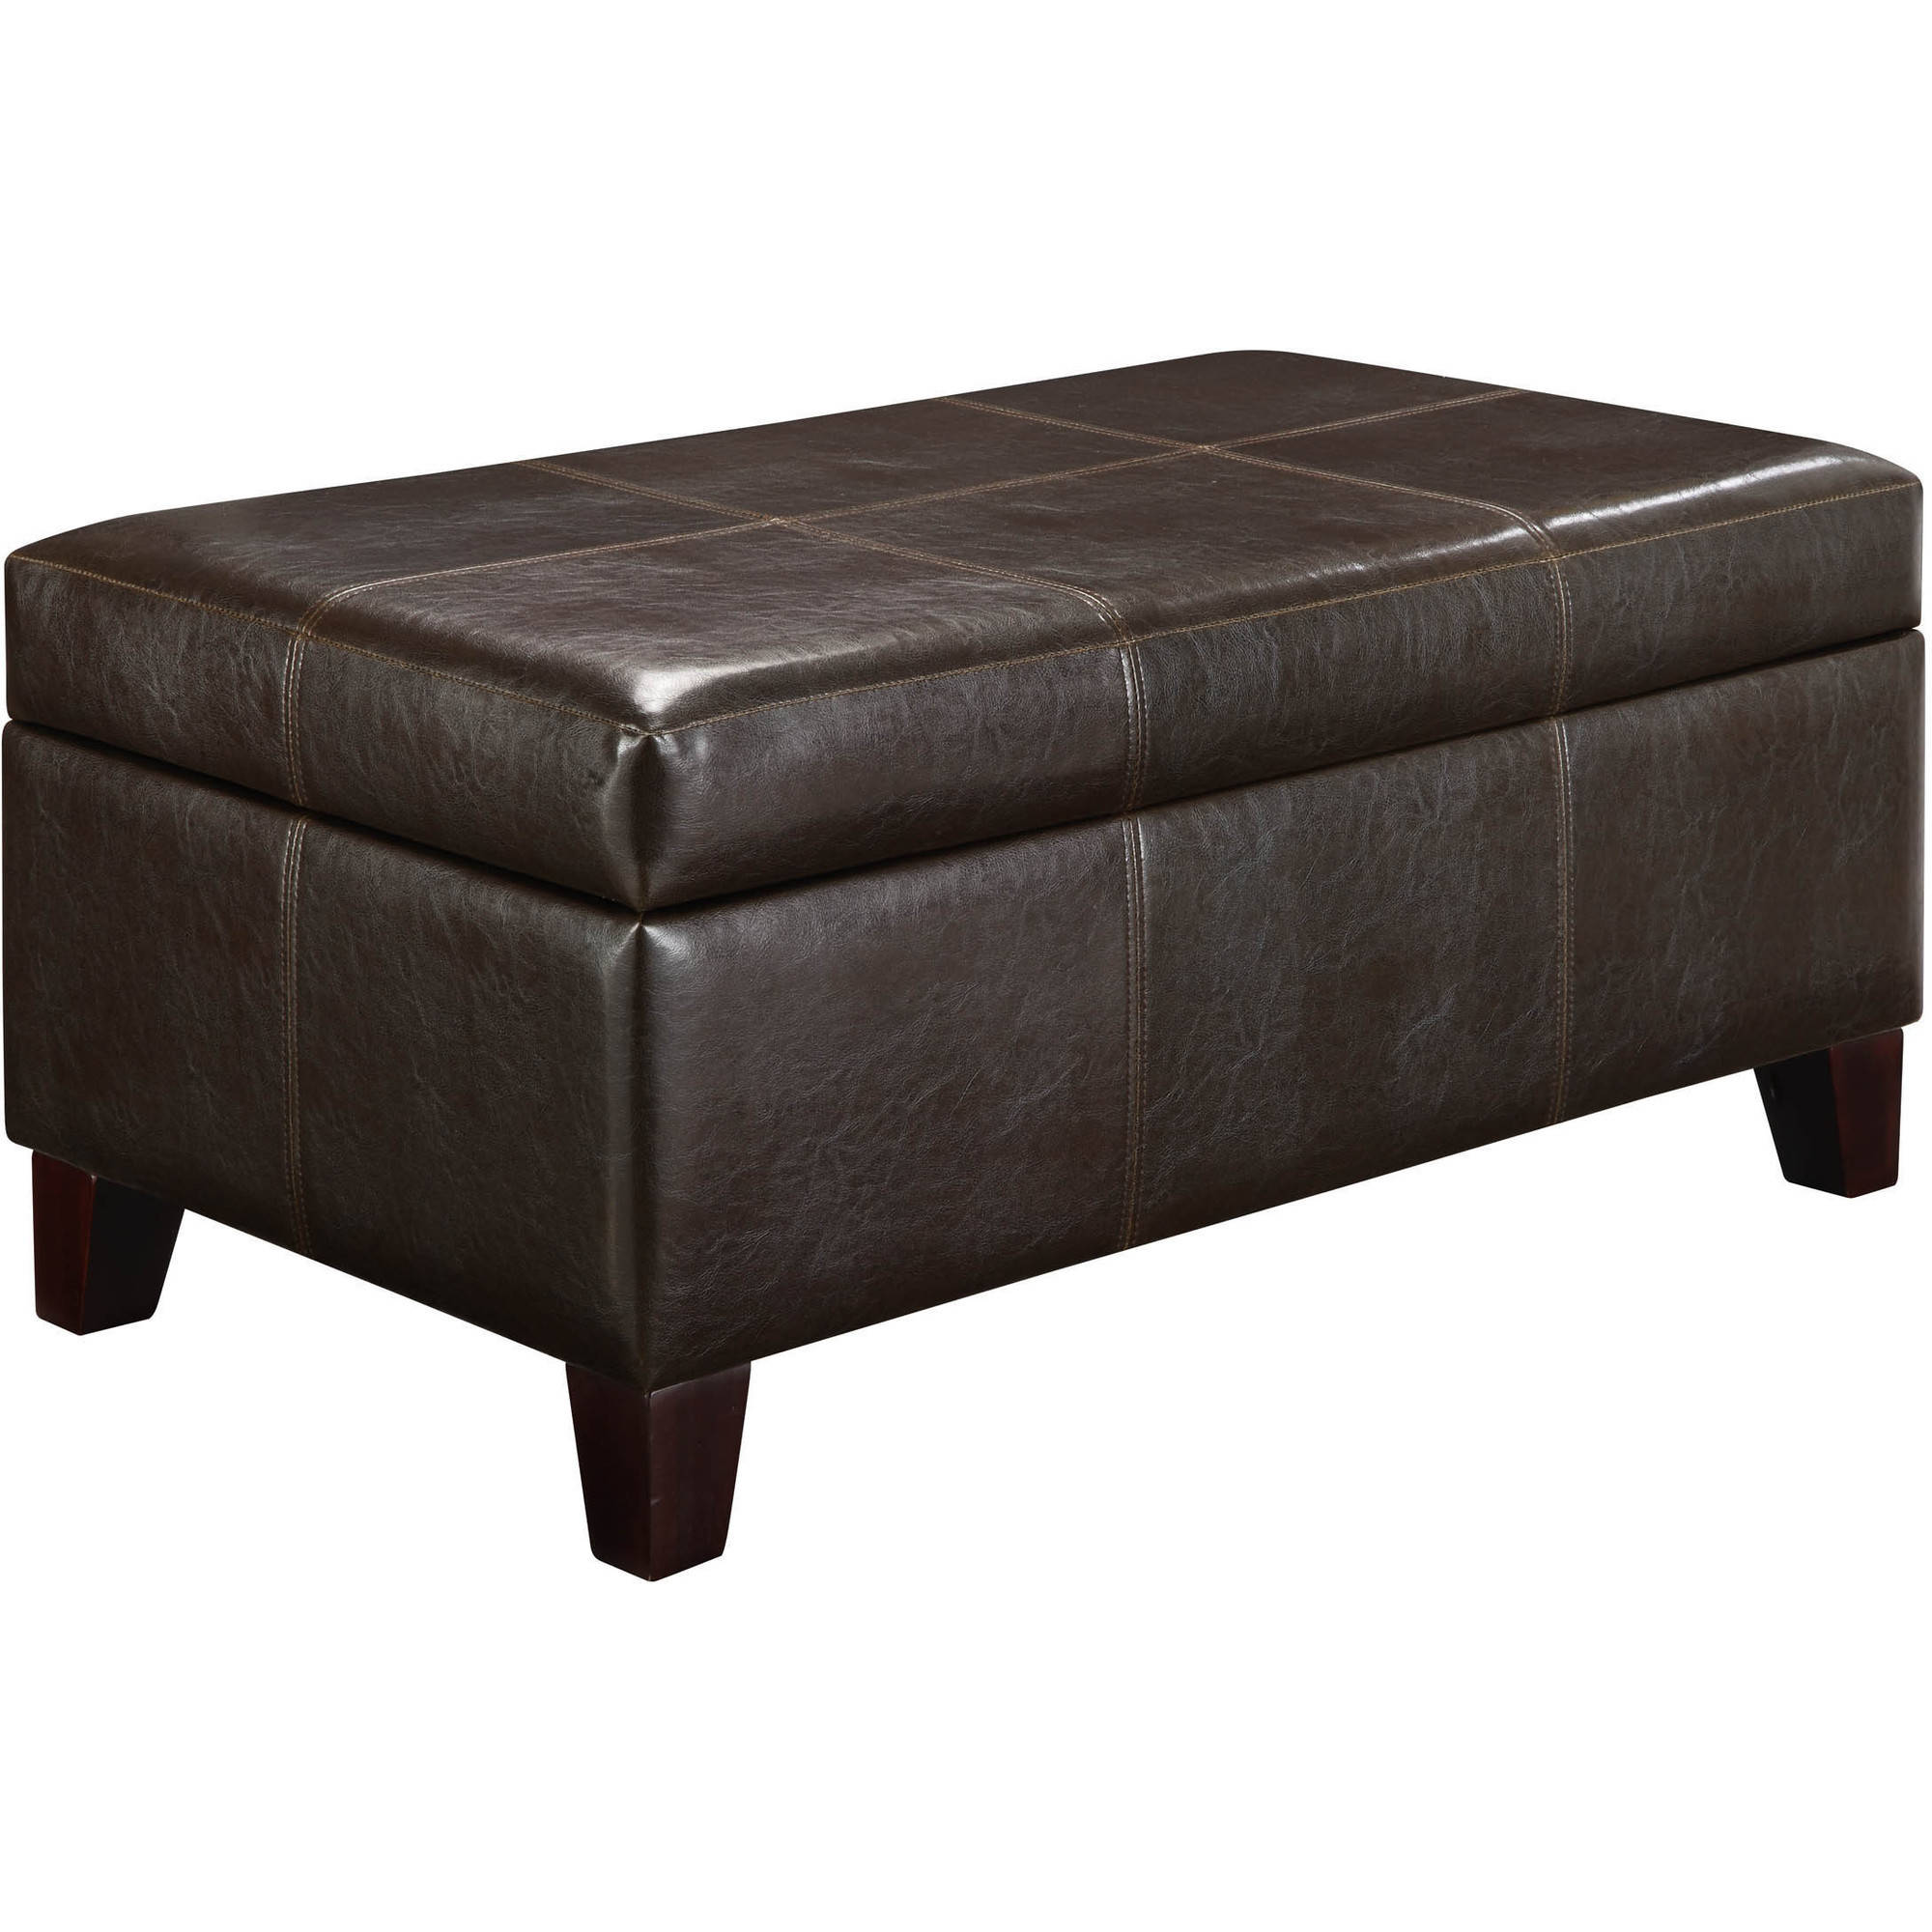 Dorel Home Rectangular Storage Ottoman, Multiple Colors by Dorel Asia